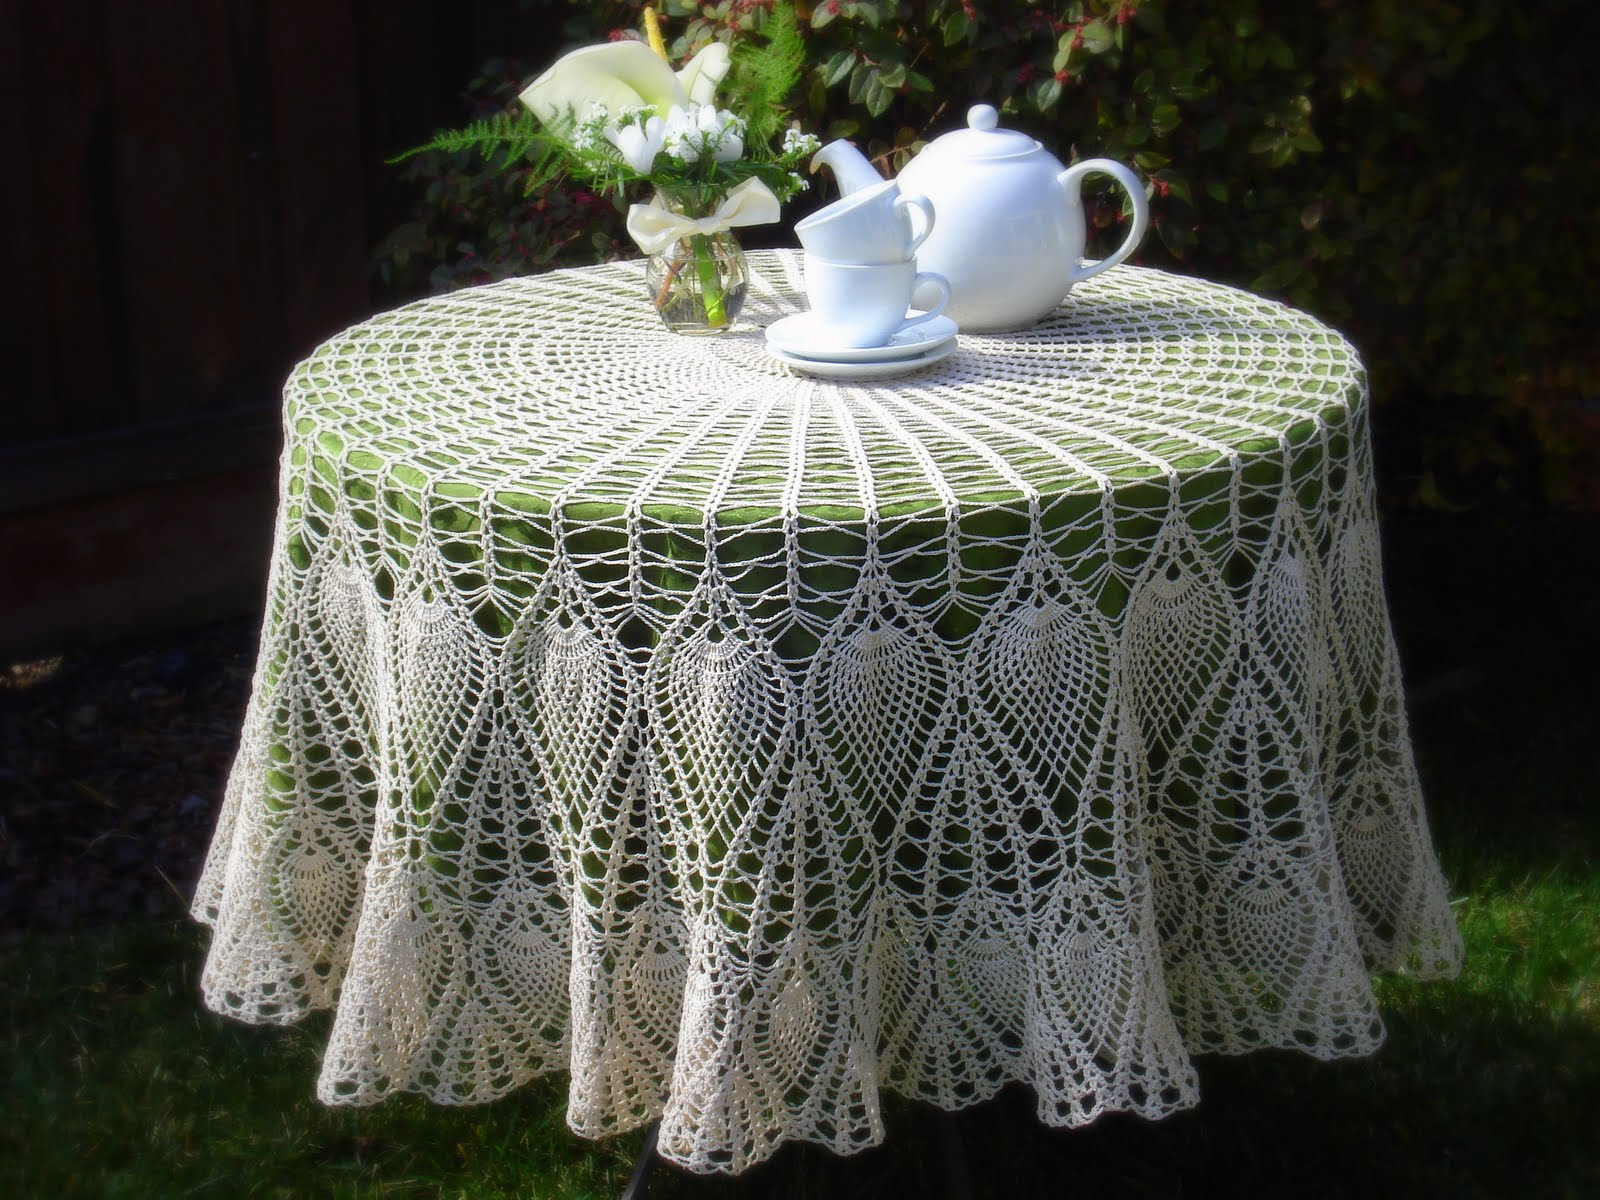 Round Pineapple Tablecloth 10 Thread Crochet Pattern - Download